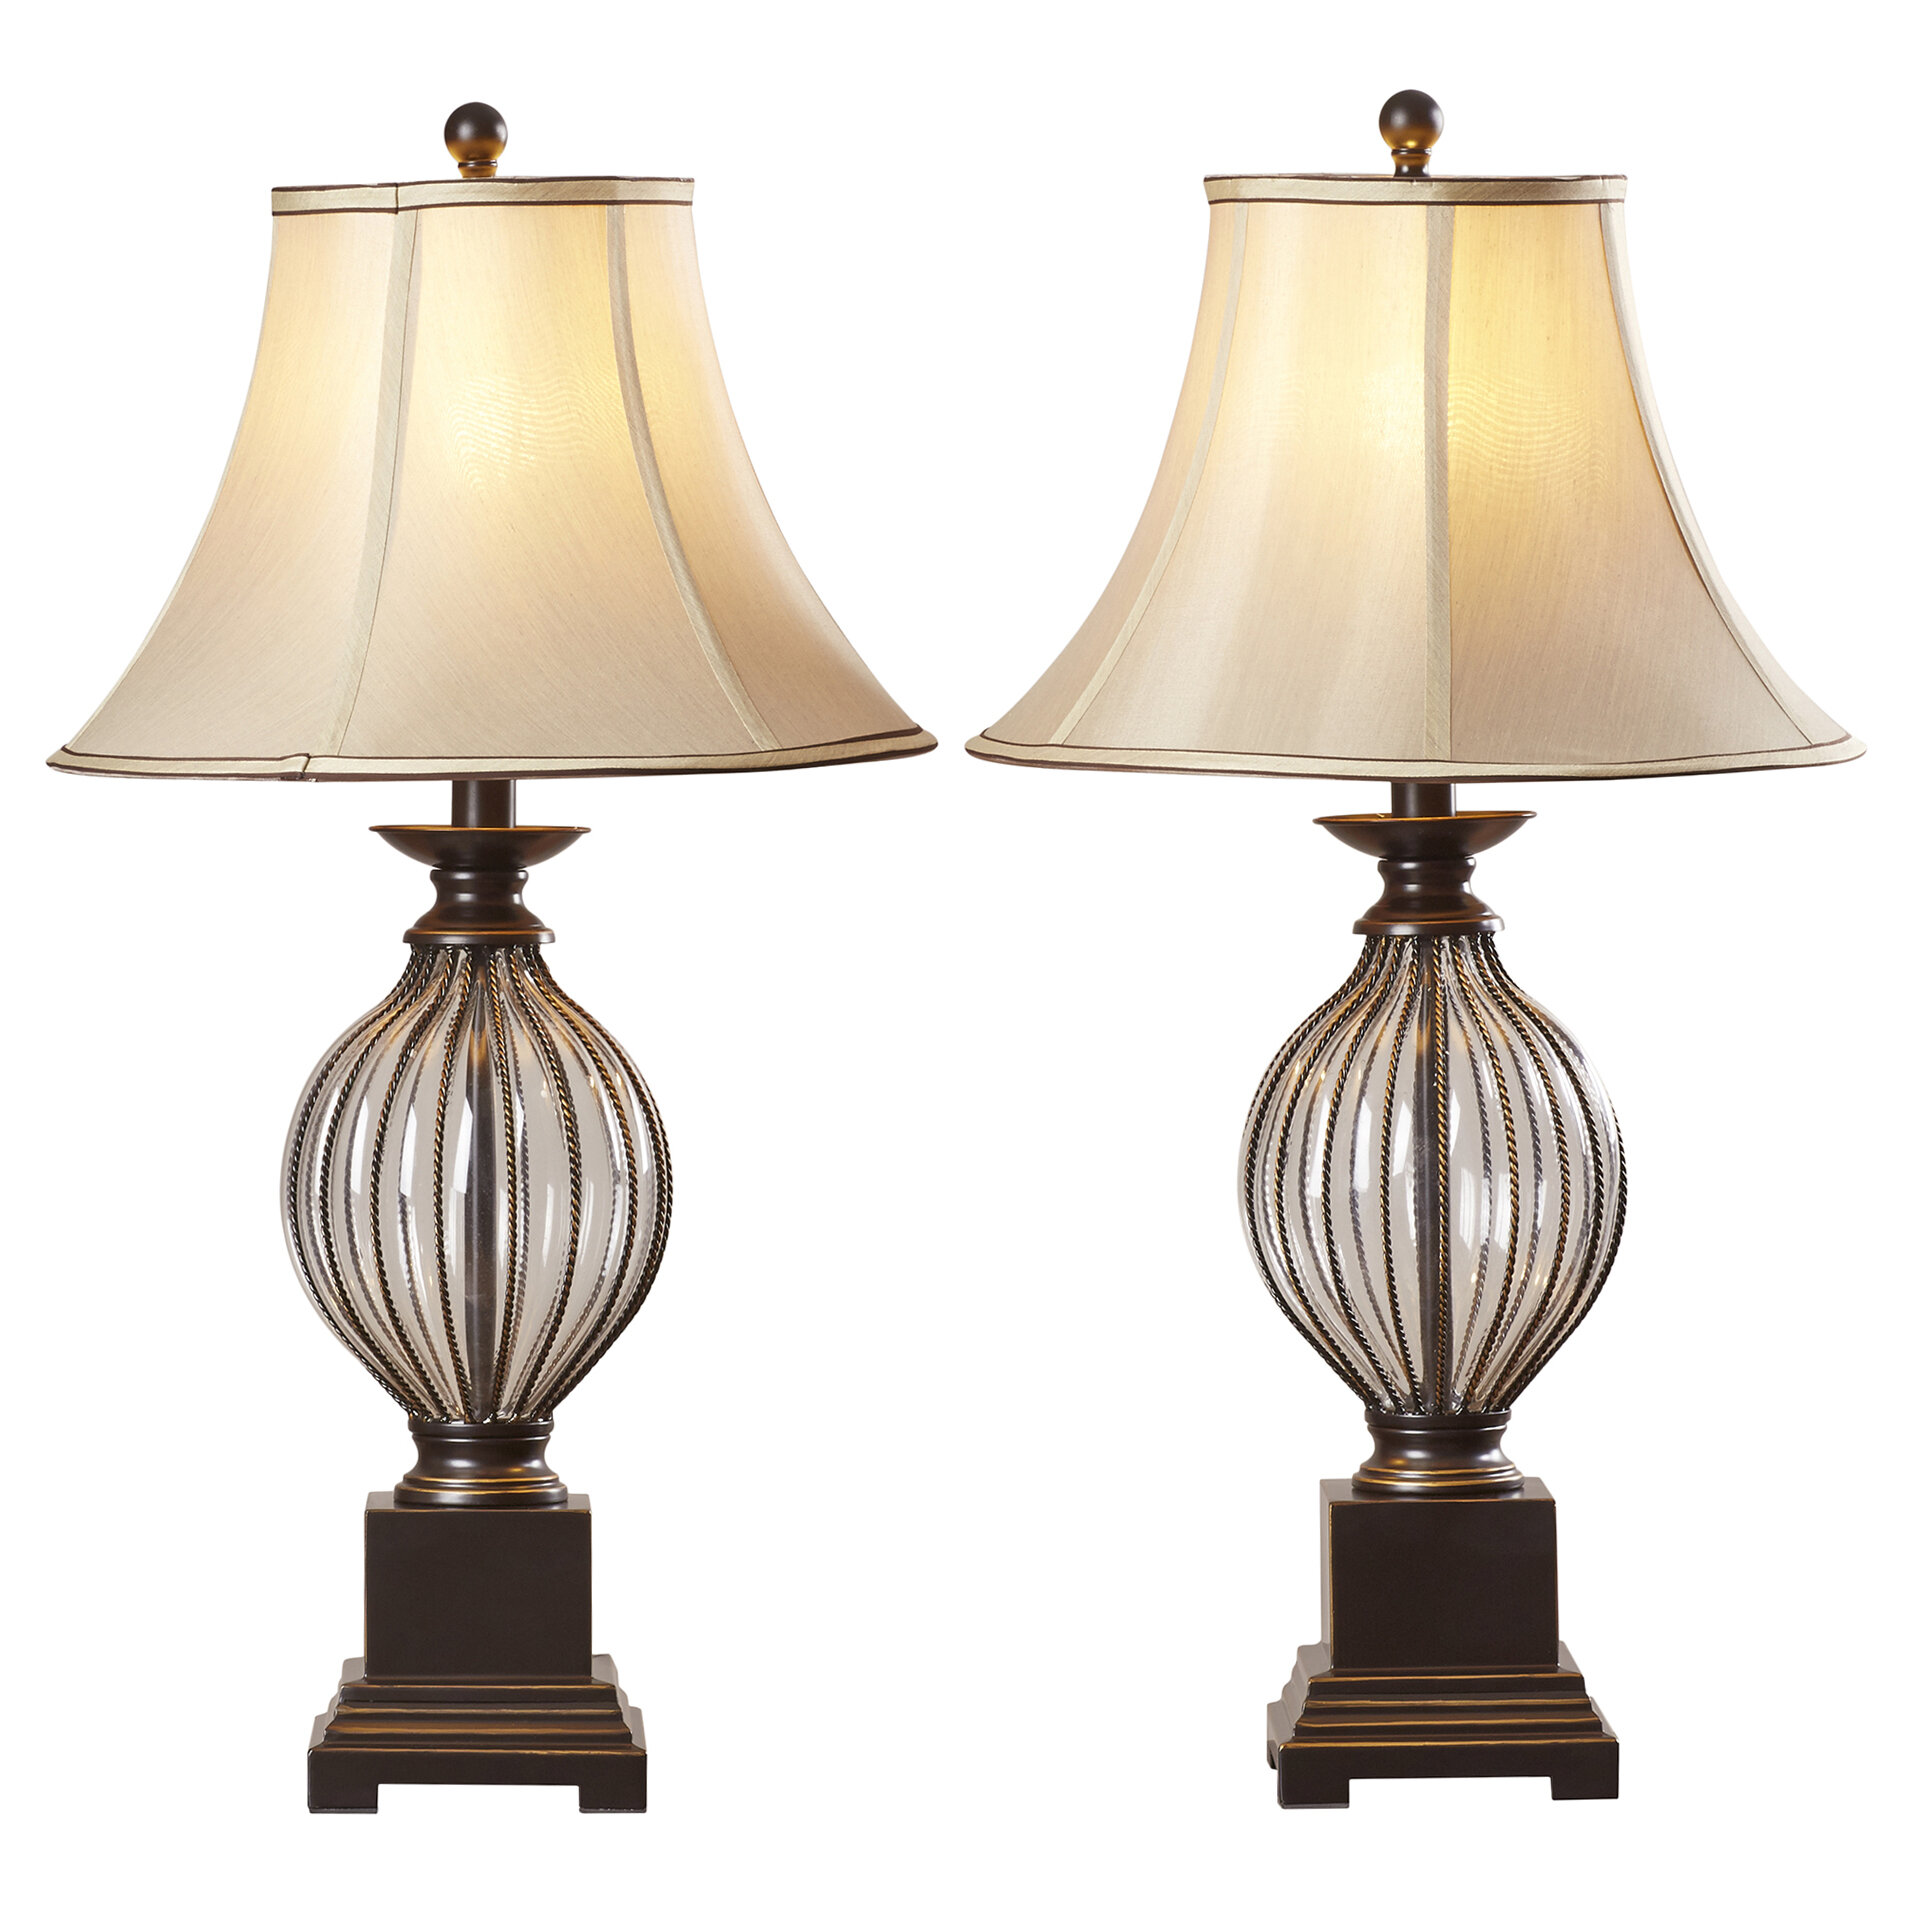 Table Lamps Joss Main Lights B Goes To The Next Ceiling Light C Switch Ontario 31 Lamp Set Of 2